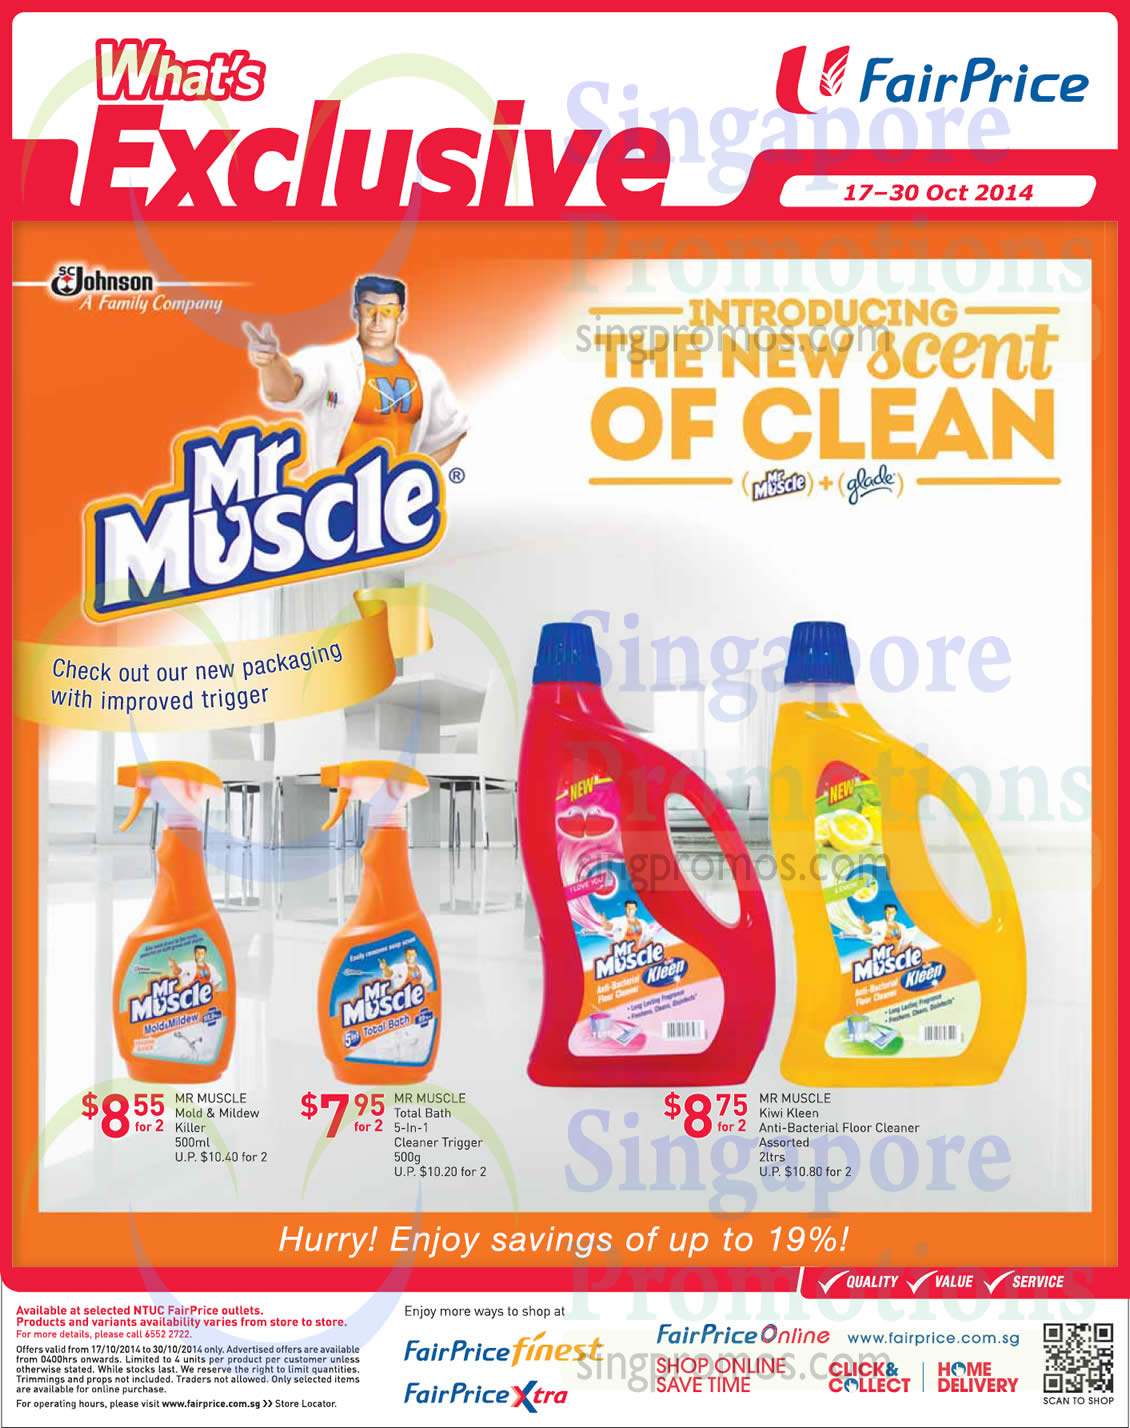 17 Oct Mr.Muscle Mold n Mildew Killer, Bath Cleaner, Floor Cleaner